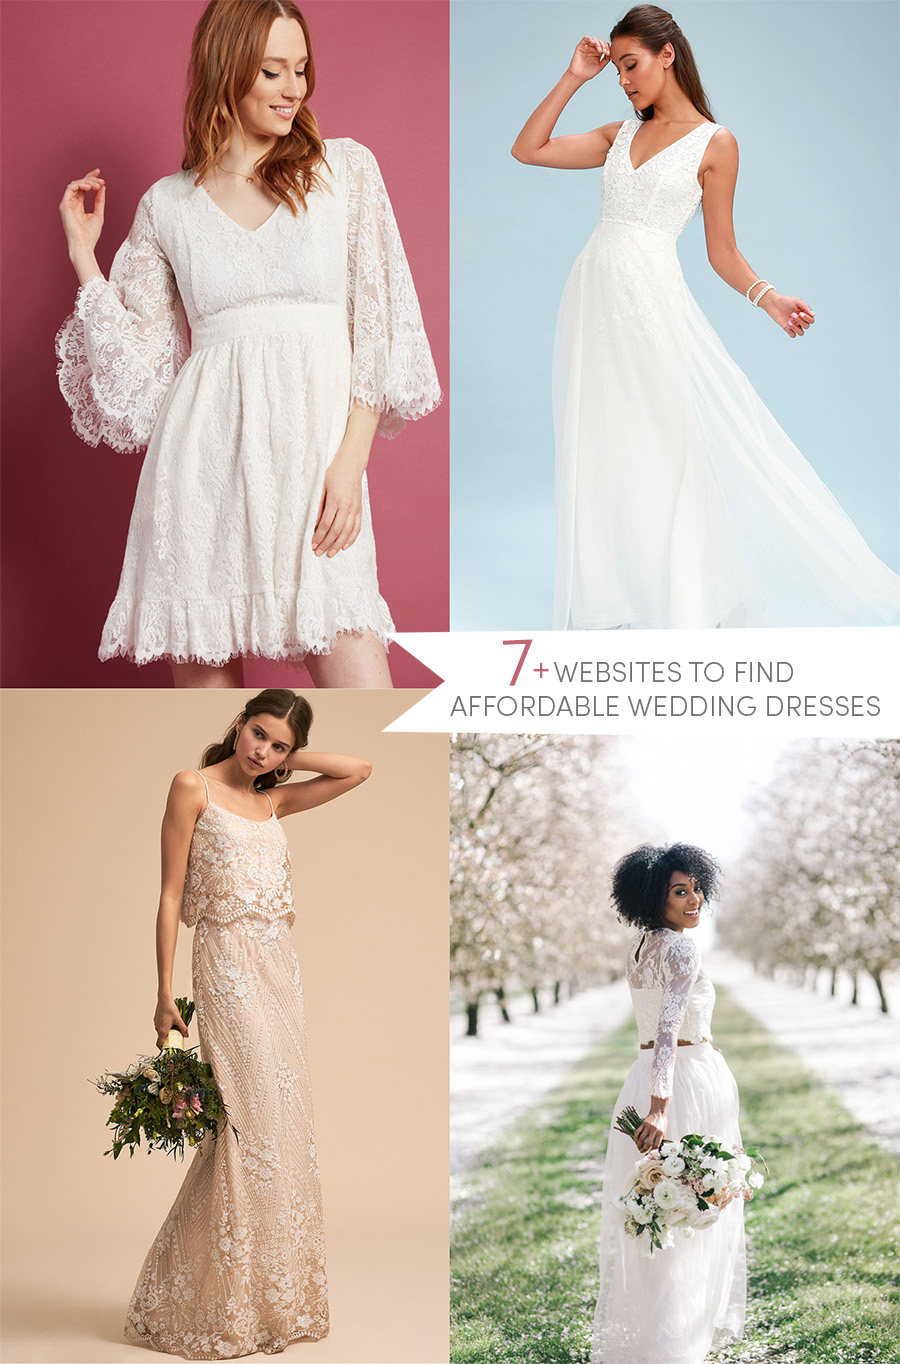 7 Websites To Find Affordable Wedding Dresses The Dainty